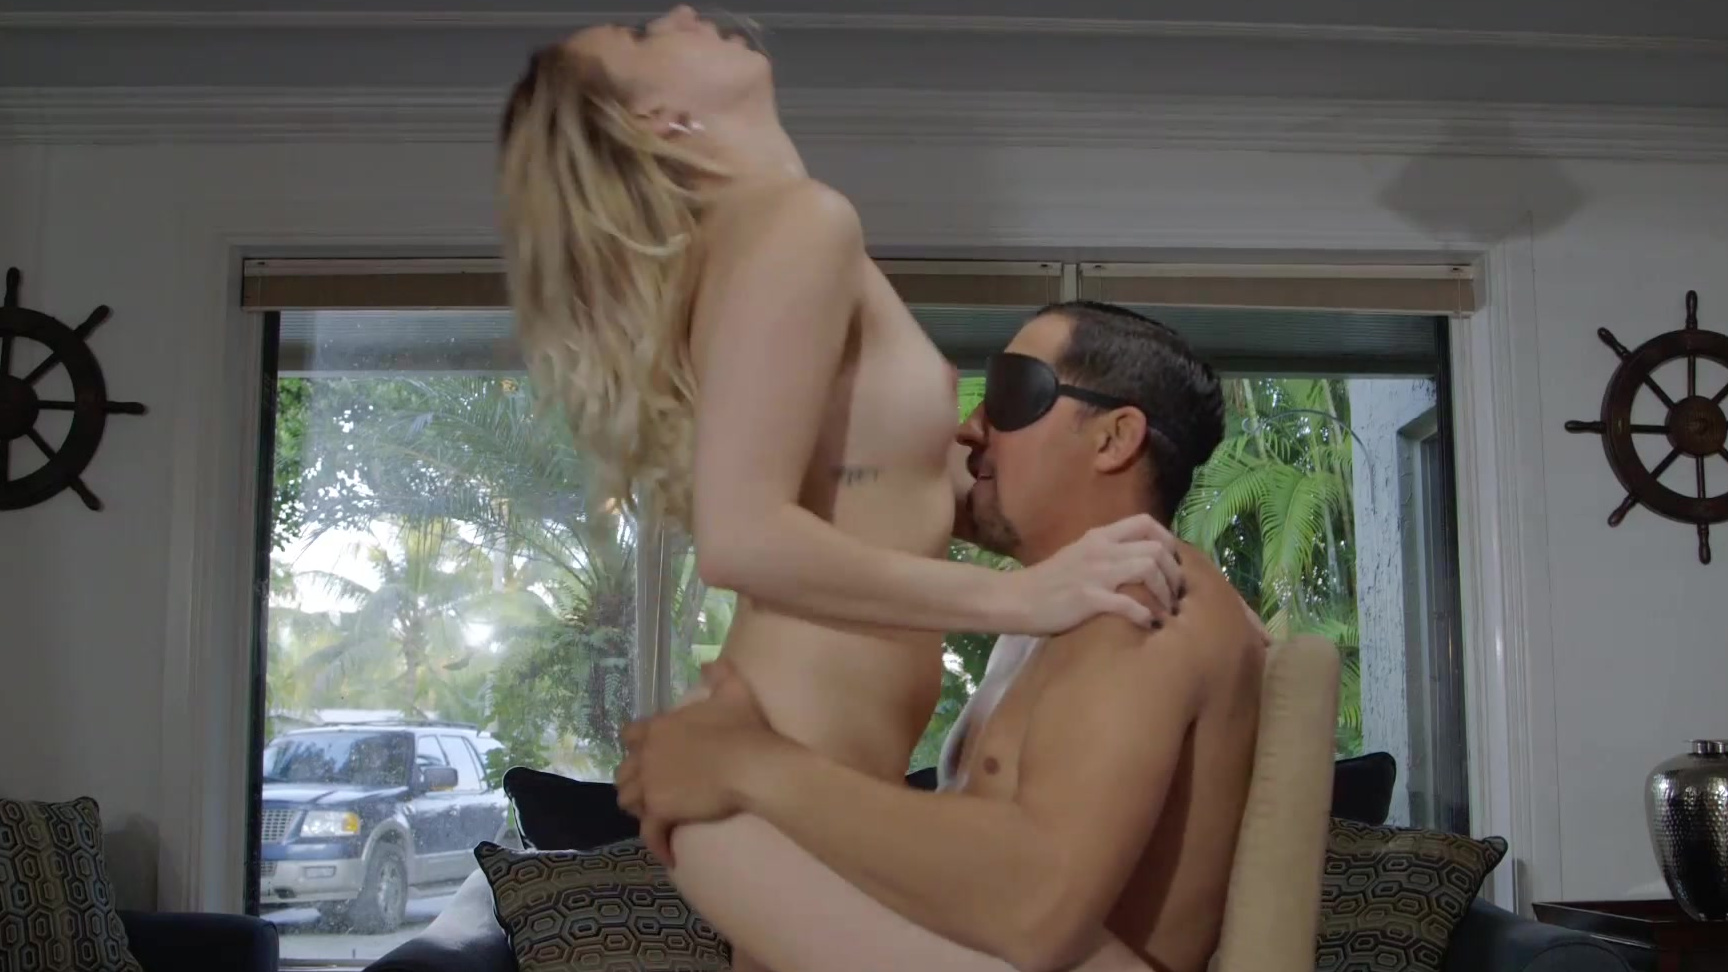 Sierra nicole seduced her stepfather can suggest